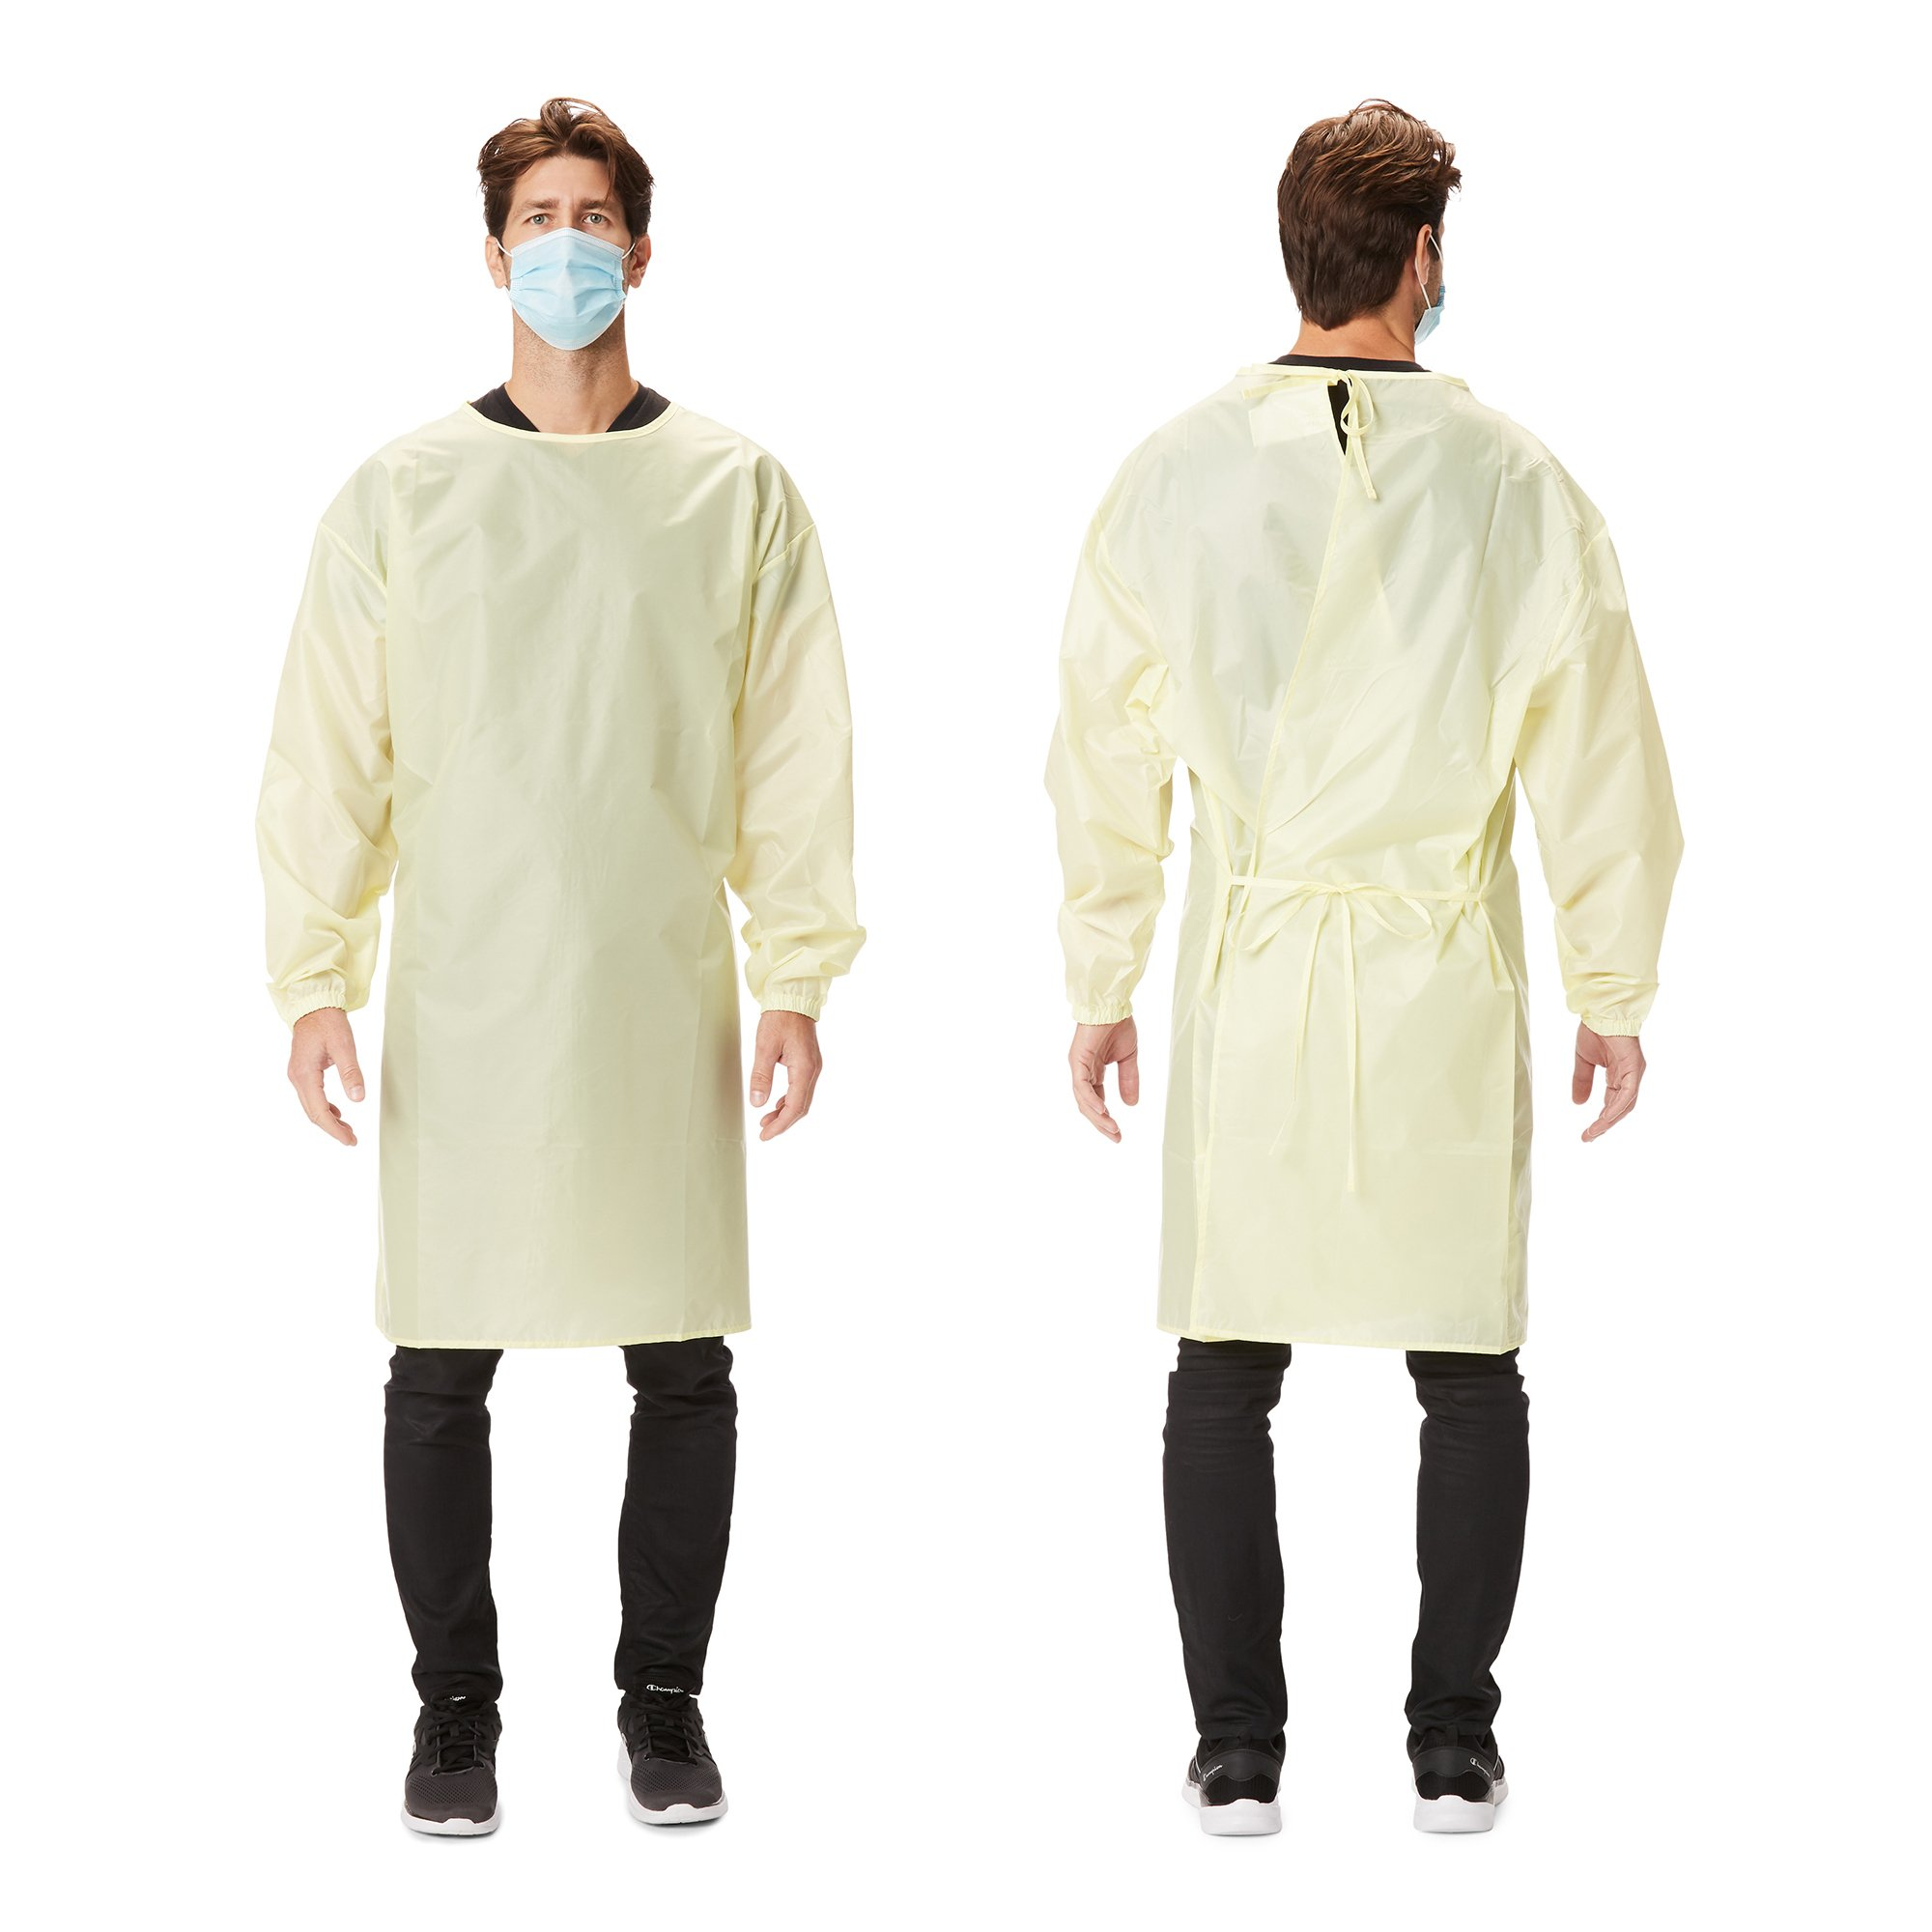 Picture of Protective Procedure Gown 2X-Large / 3X-Large Yellow NonSterile AAMI Level 1 Reusable, 50 per Case